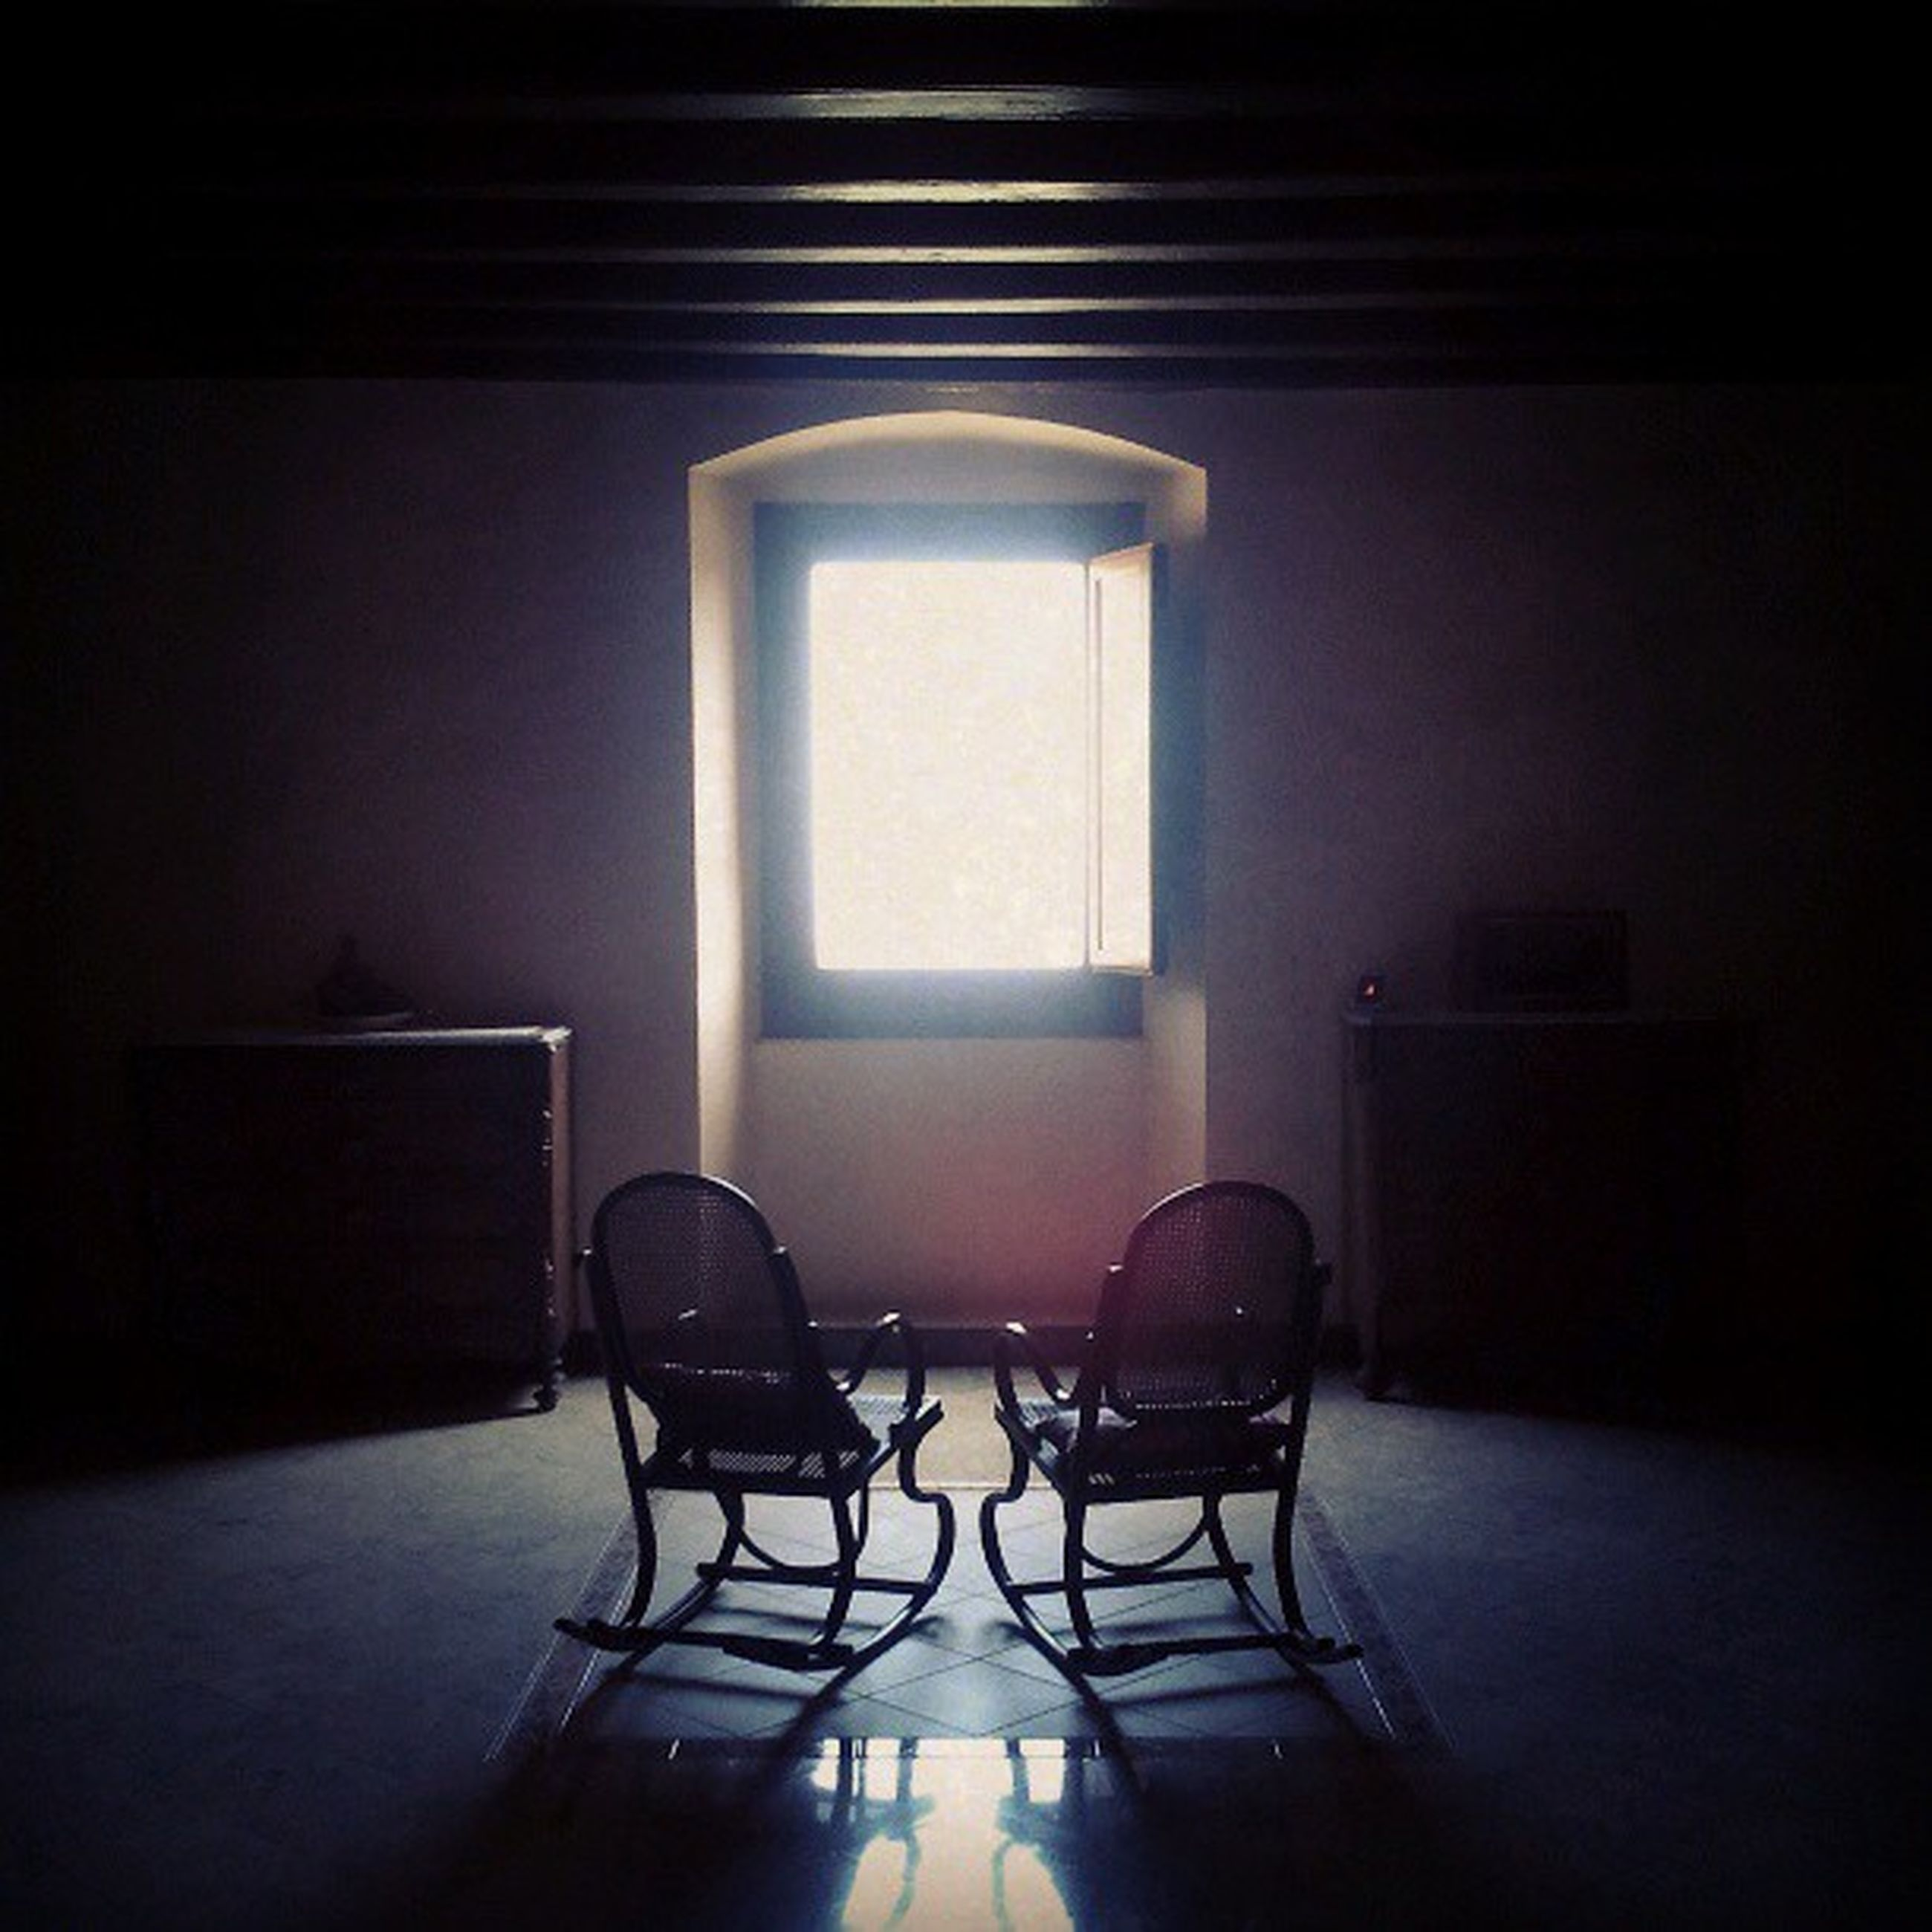 indoors, absence, empty, chair, table, home interior, window, domestic room, furniture, architecture, room, seat, sunlight, house, flooring, no people, home showcase interior, built structure, wall, wall - building feature